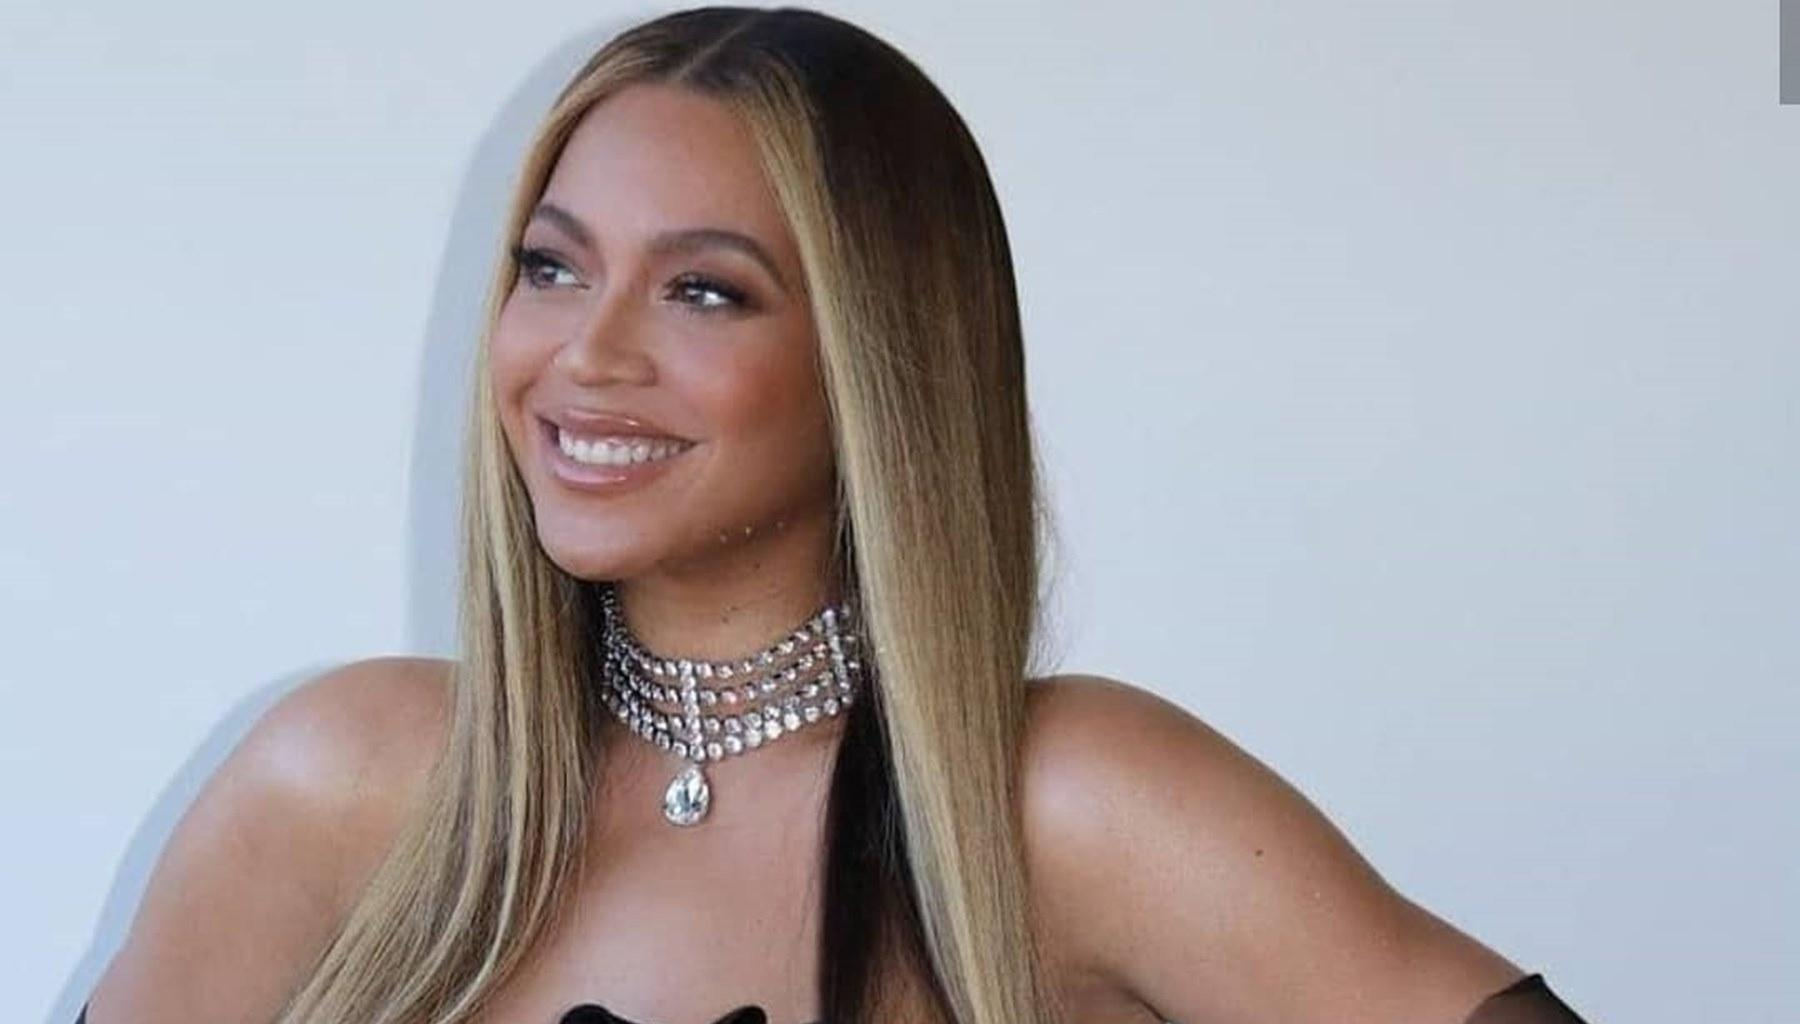 Beyoncé Looks Like A Real-Life Barbie Doll In Stunning New Photos